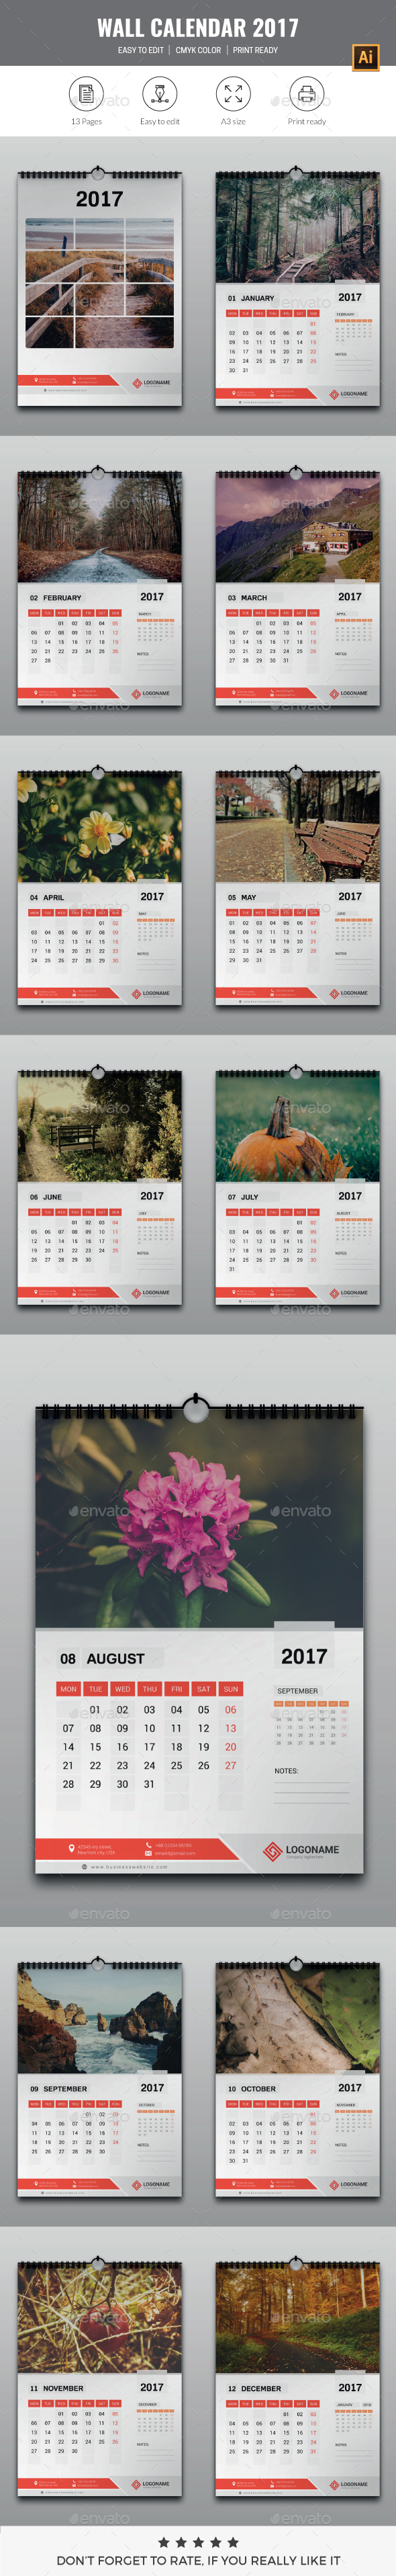 Wall Calendar 2017 - Calendars Stationery